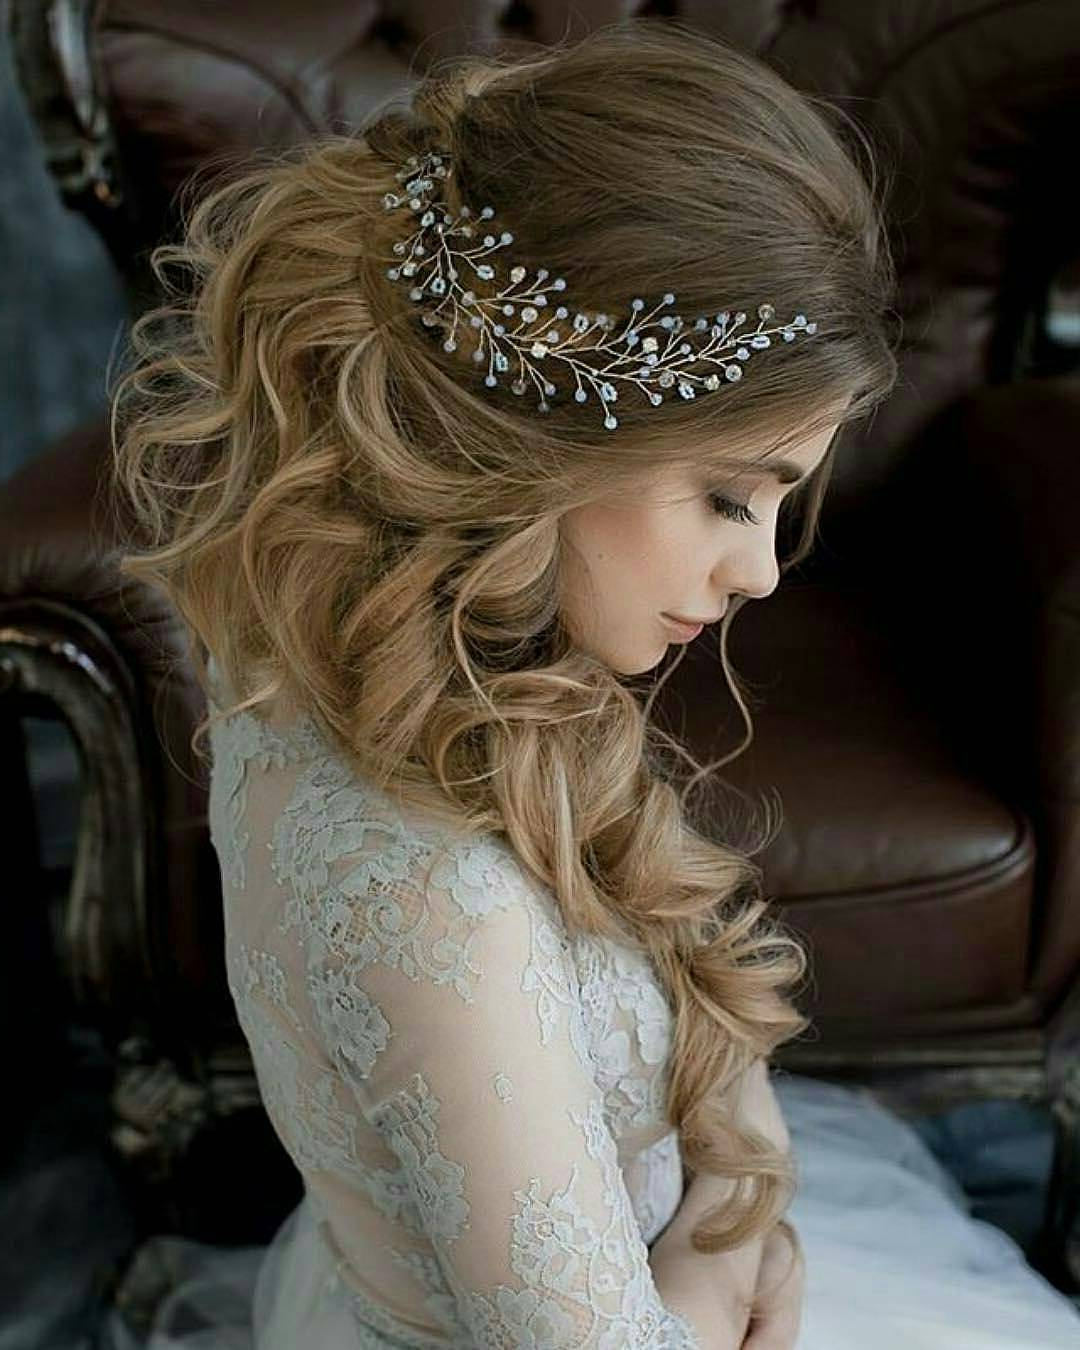 10 Lavish Wedding Hairstyles For Long Hair – Wedding Hairstyle Ideas Within 2017 Vintage Asymmetrical Wedding Hairstyles (View 1 of 20)